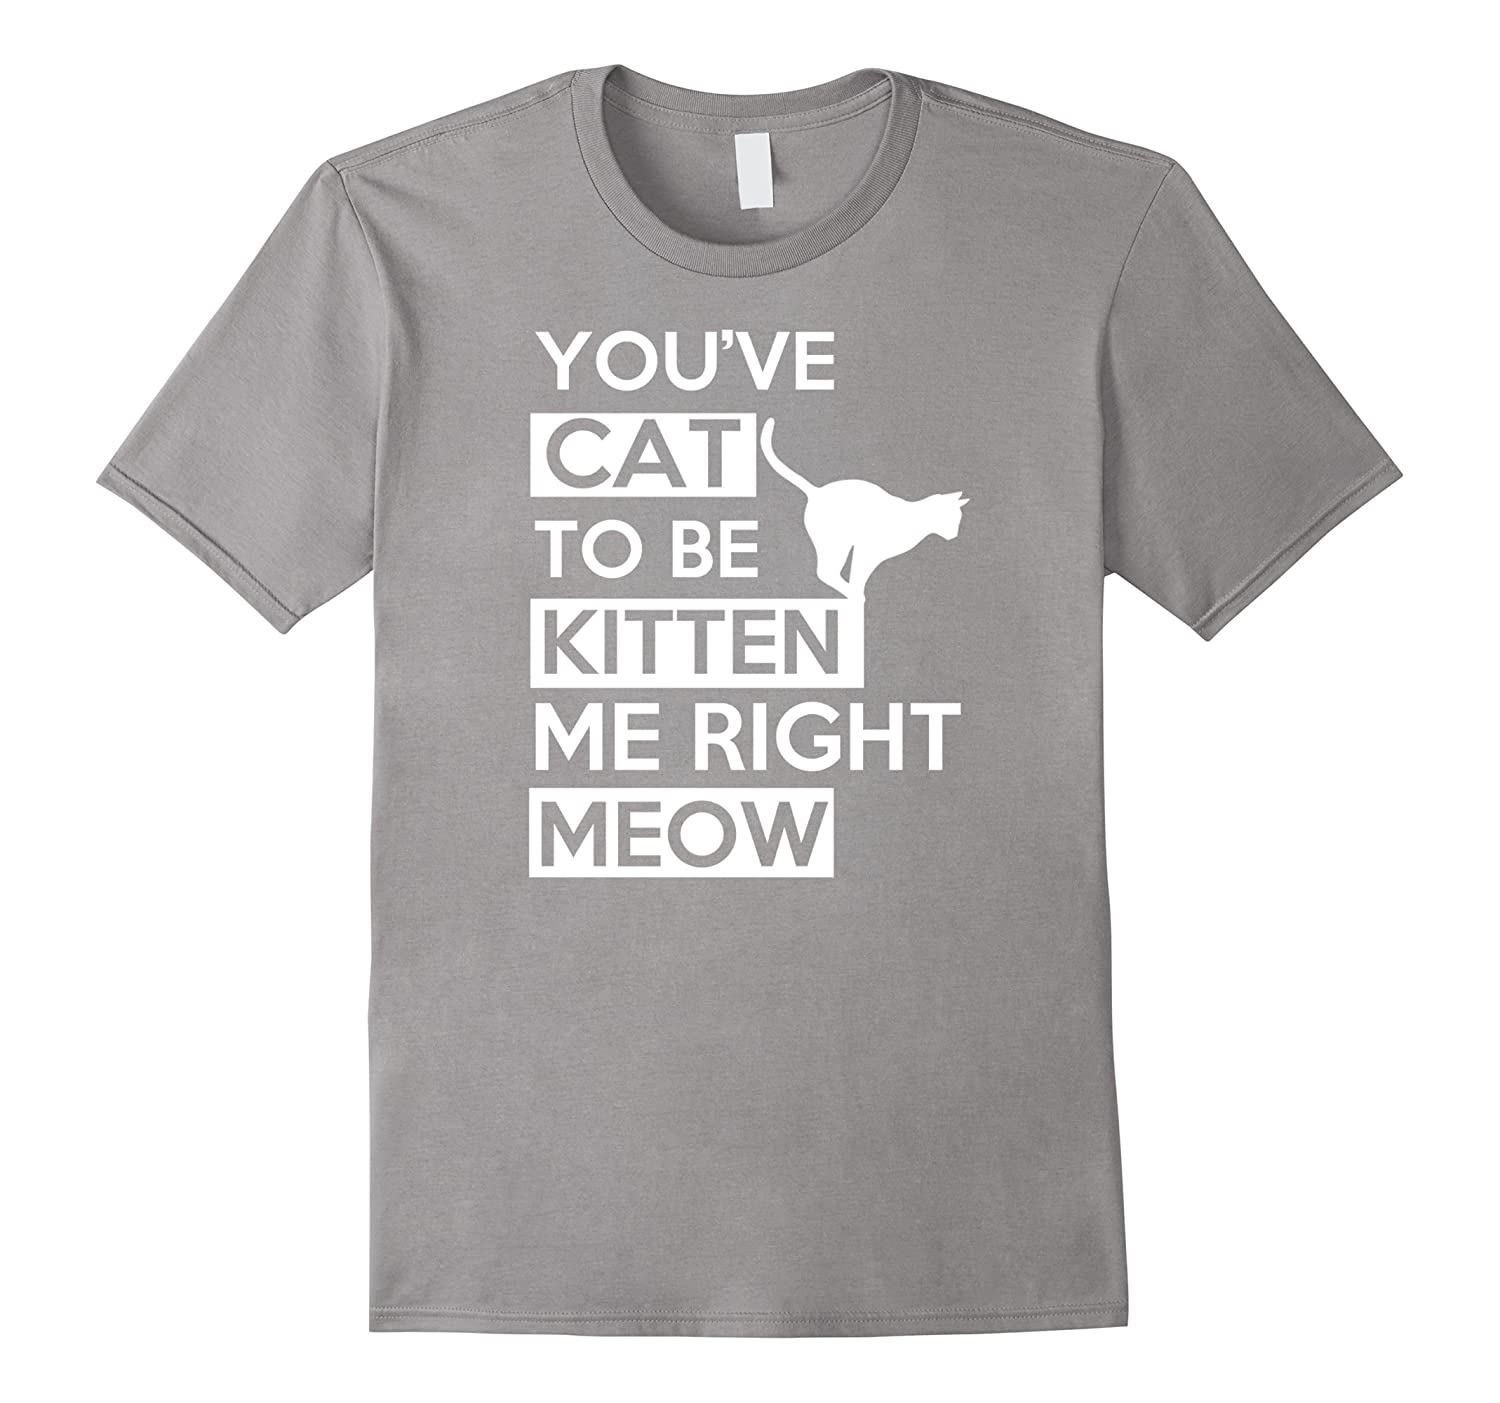 You've Cat to be Kitten Me Right Meow Funny T-Shirt Kitty-CL